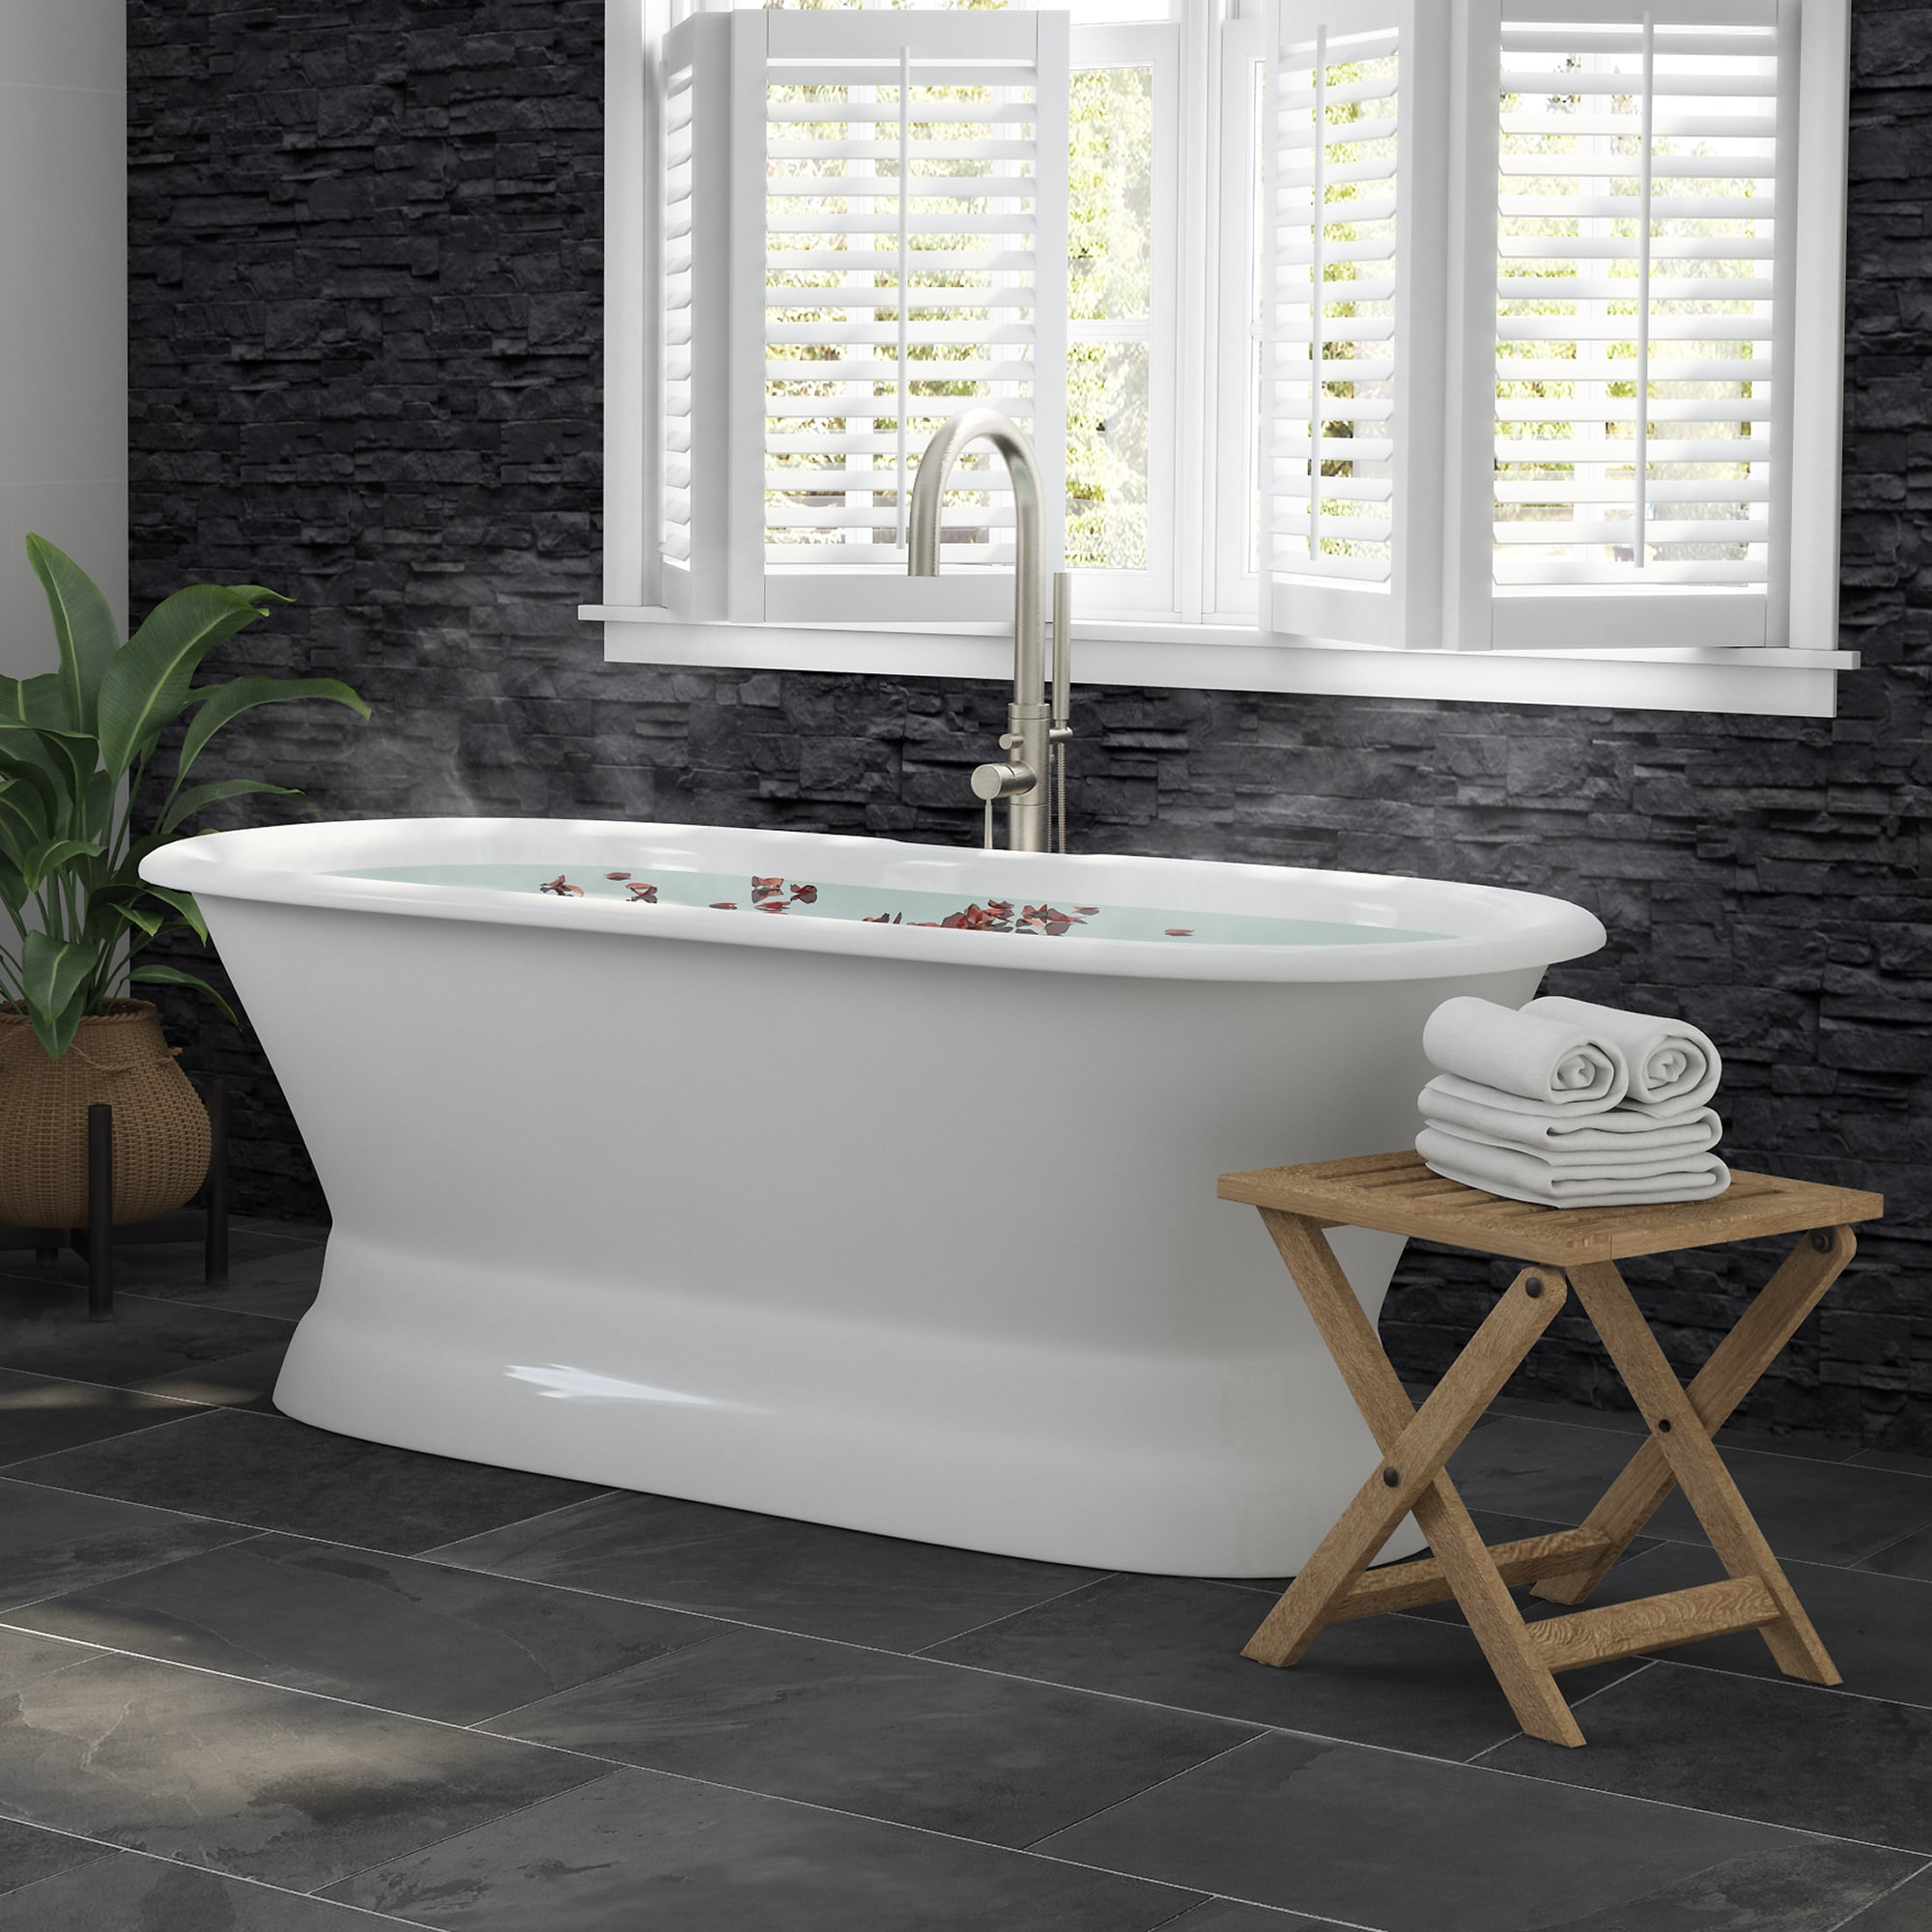 double ended pedestal tub, cast iron tub and faucet,